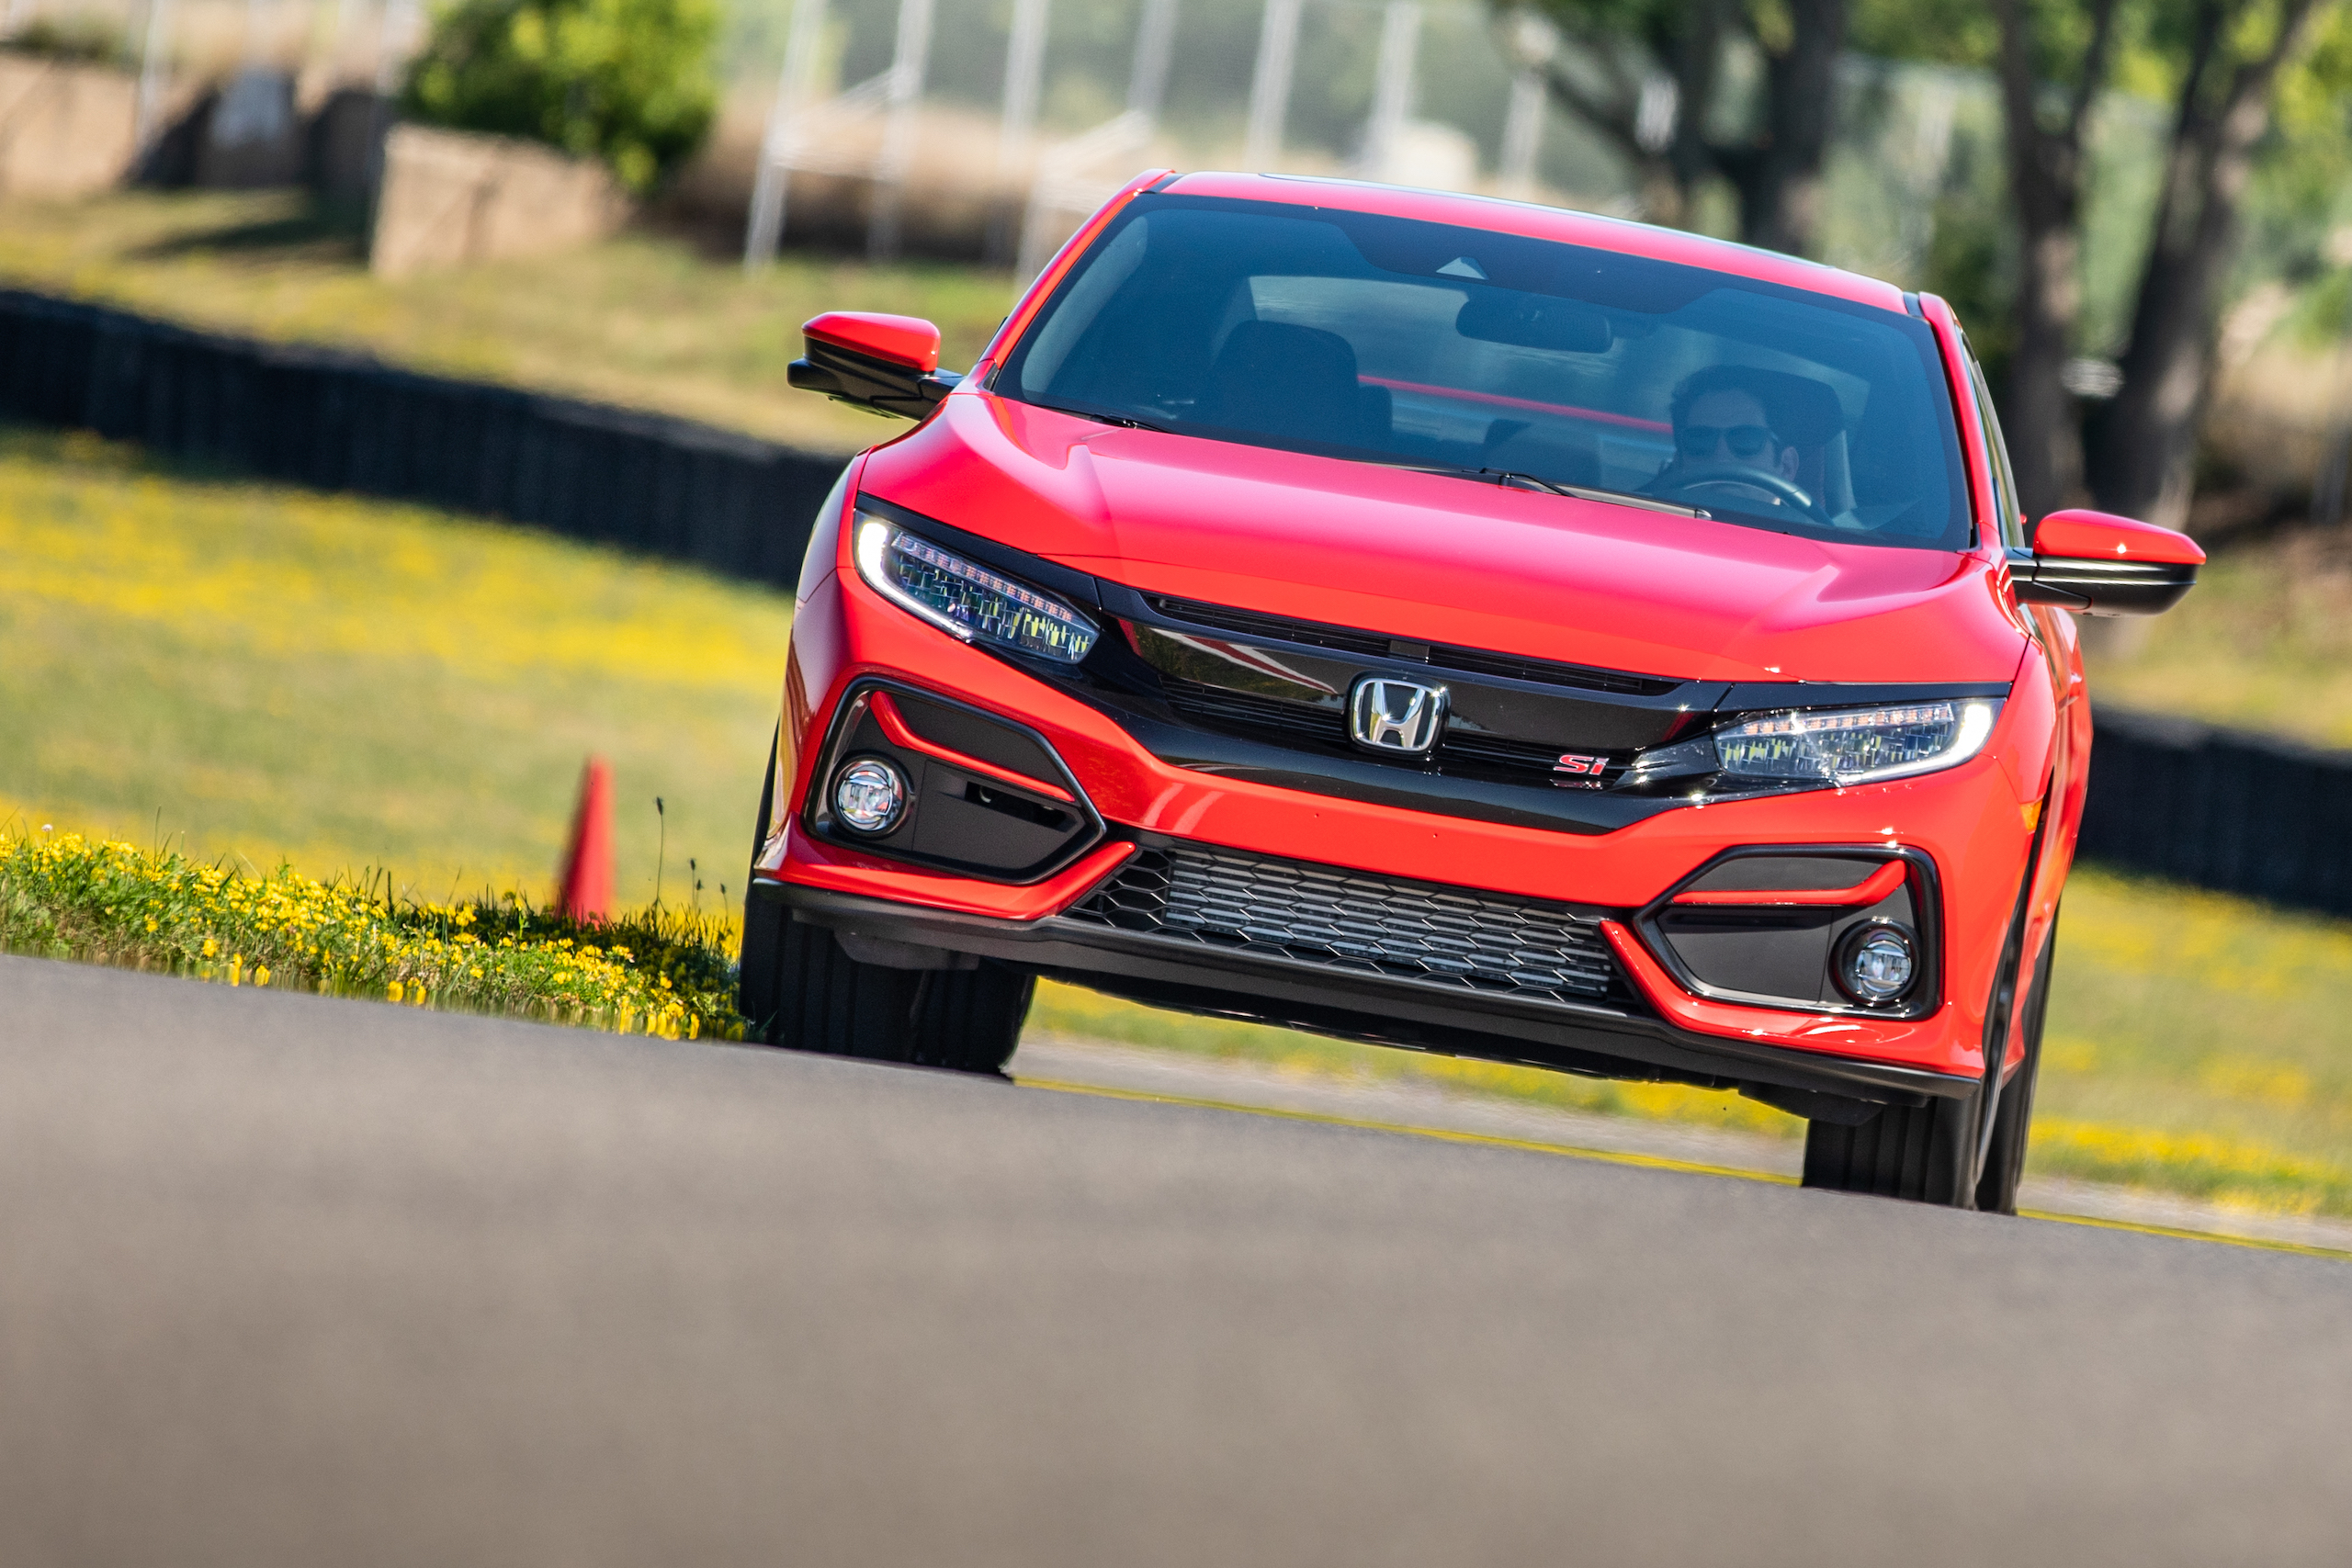 2020 Civic Si front track action